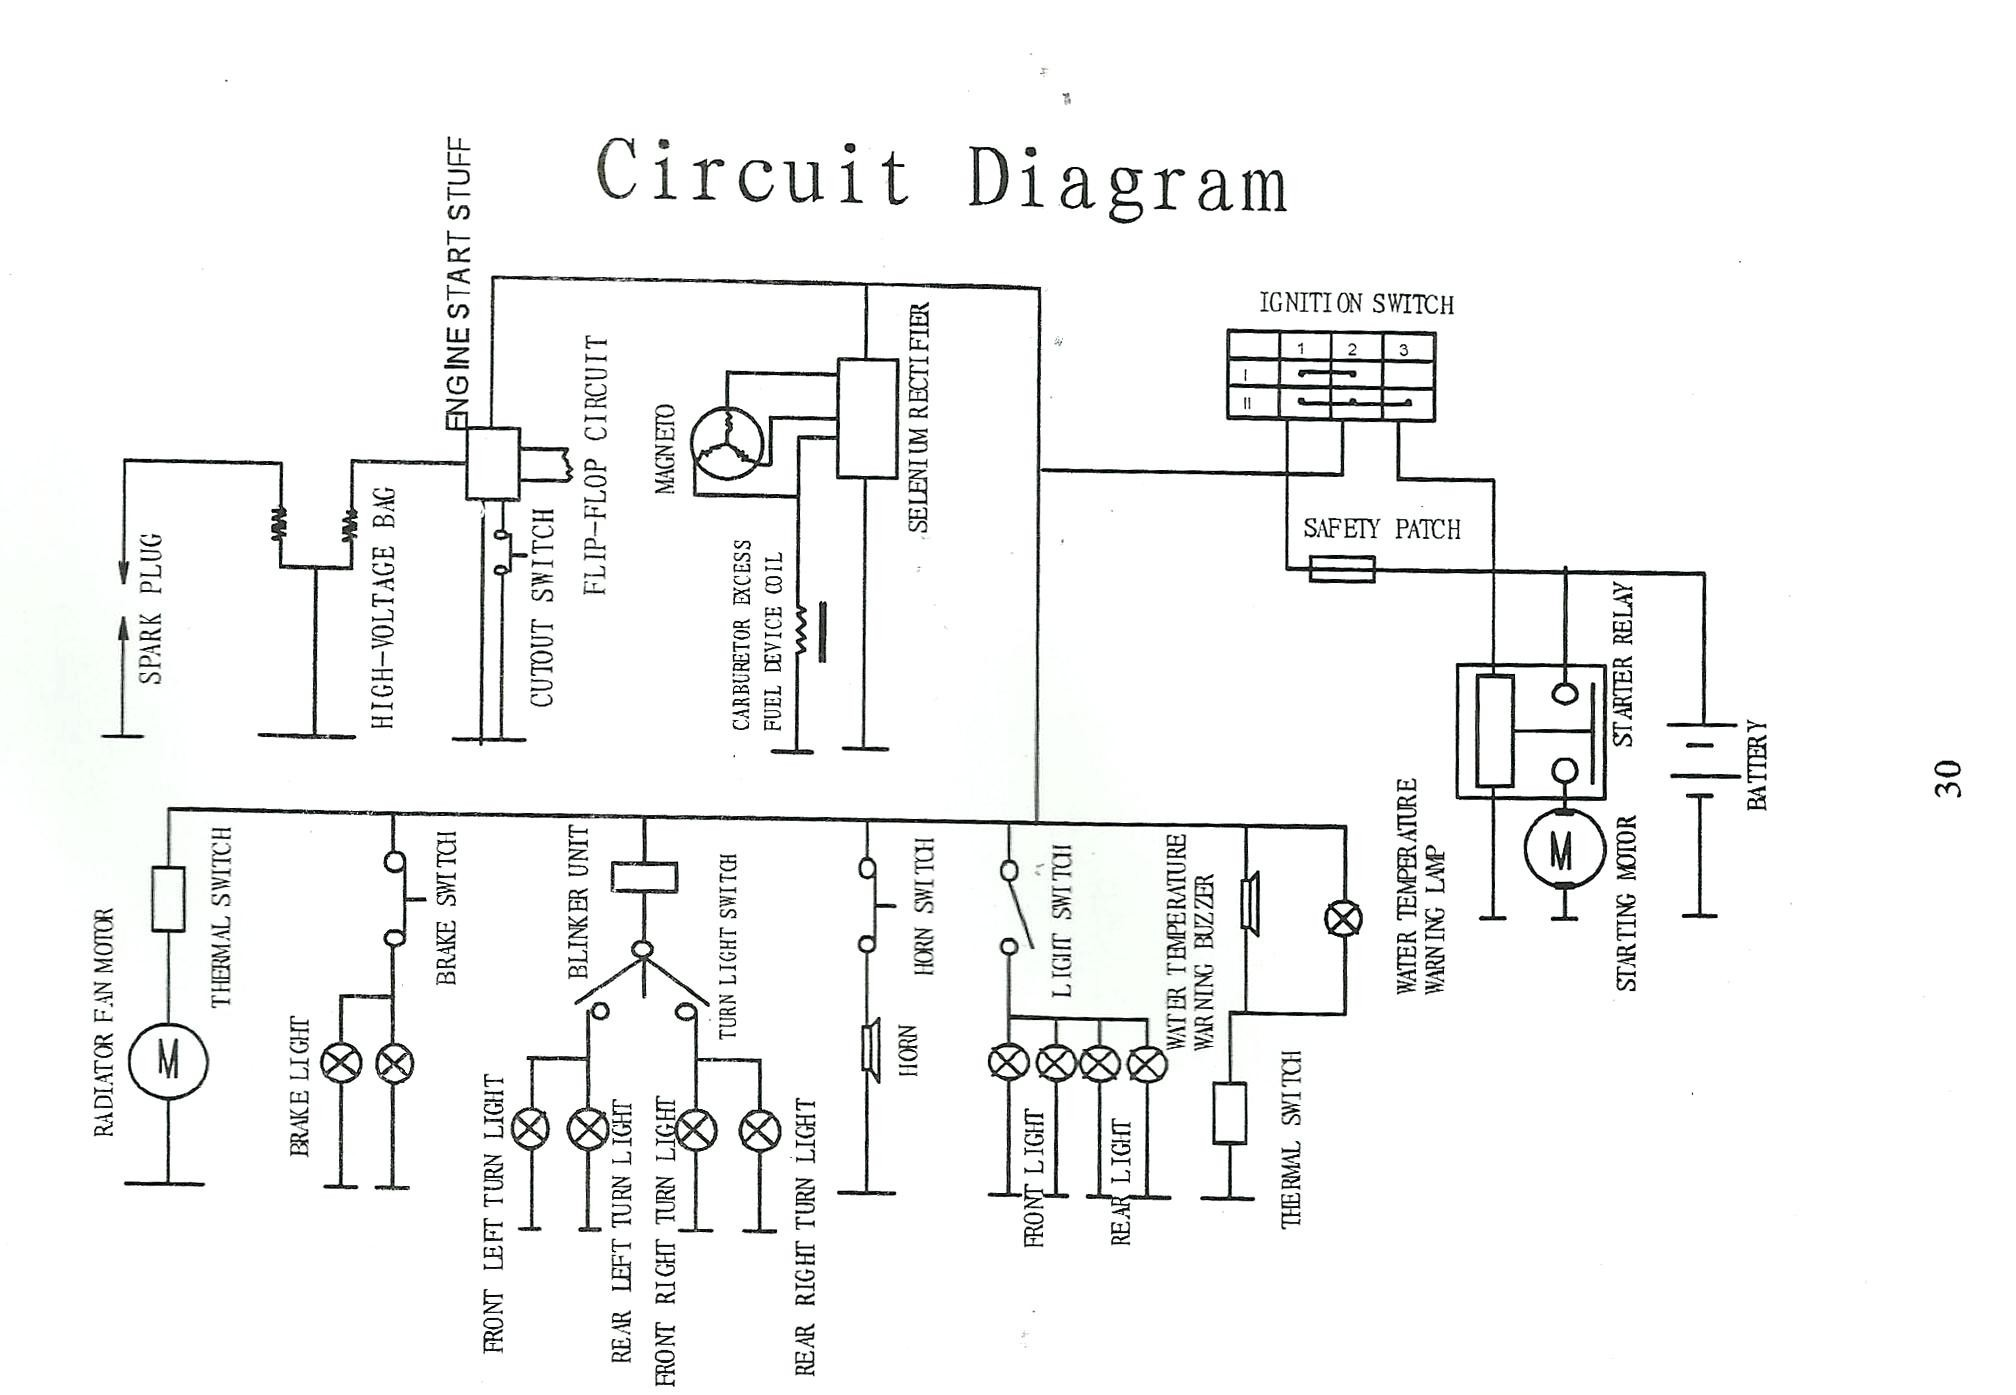 110cc mini chopper wiring diagram · 110cc chinese chopper wiring diagram